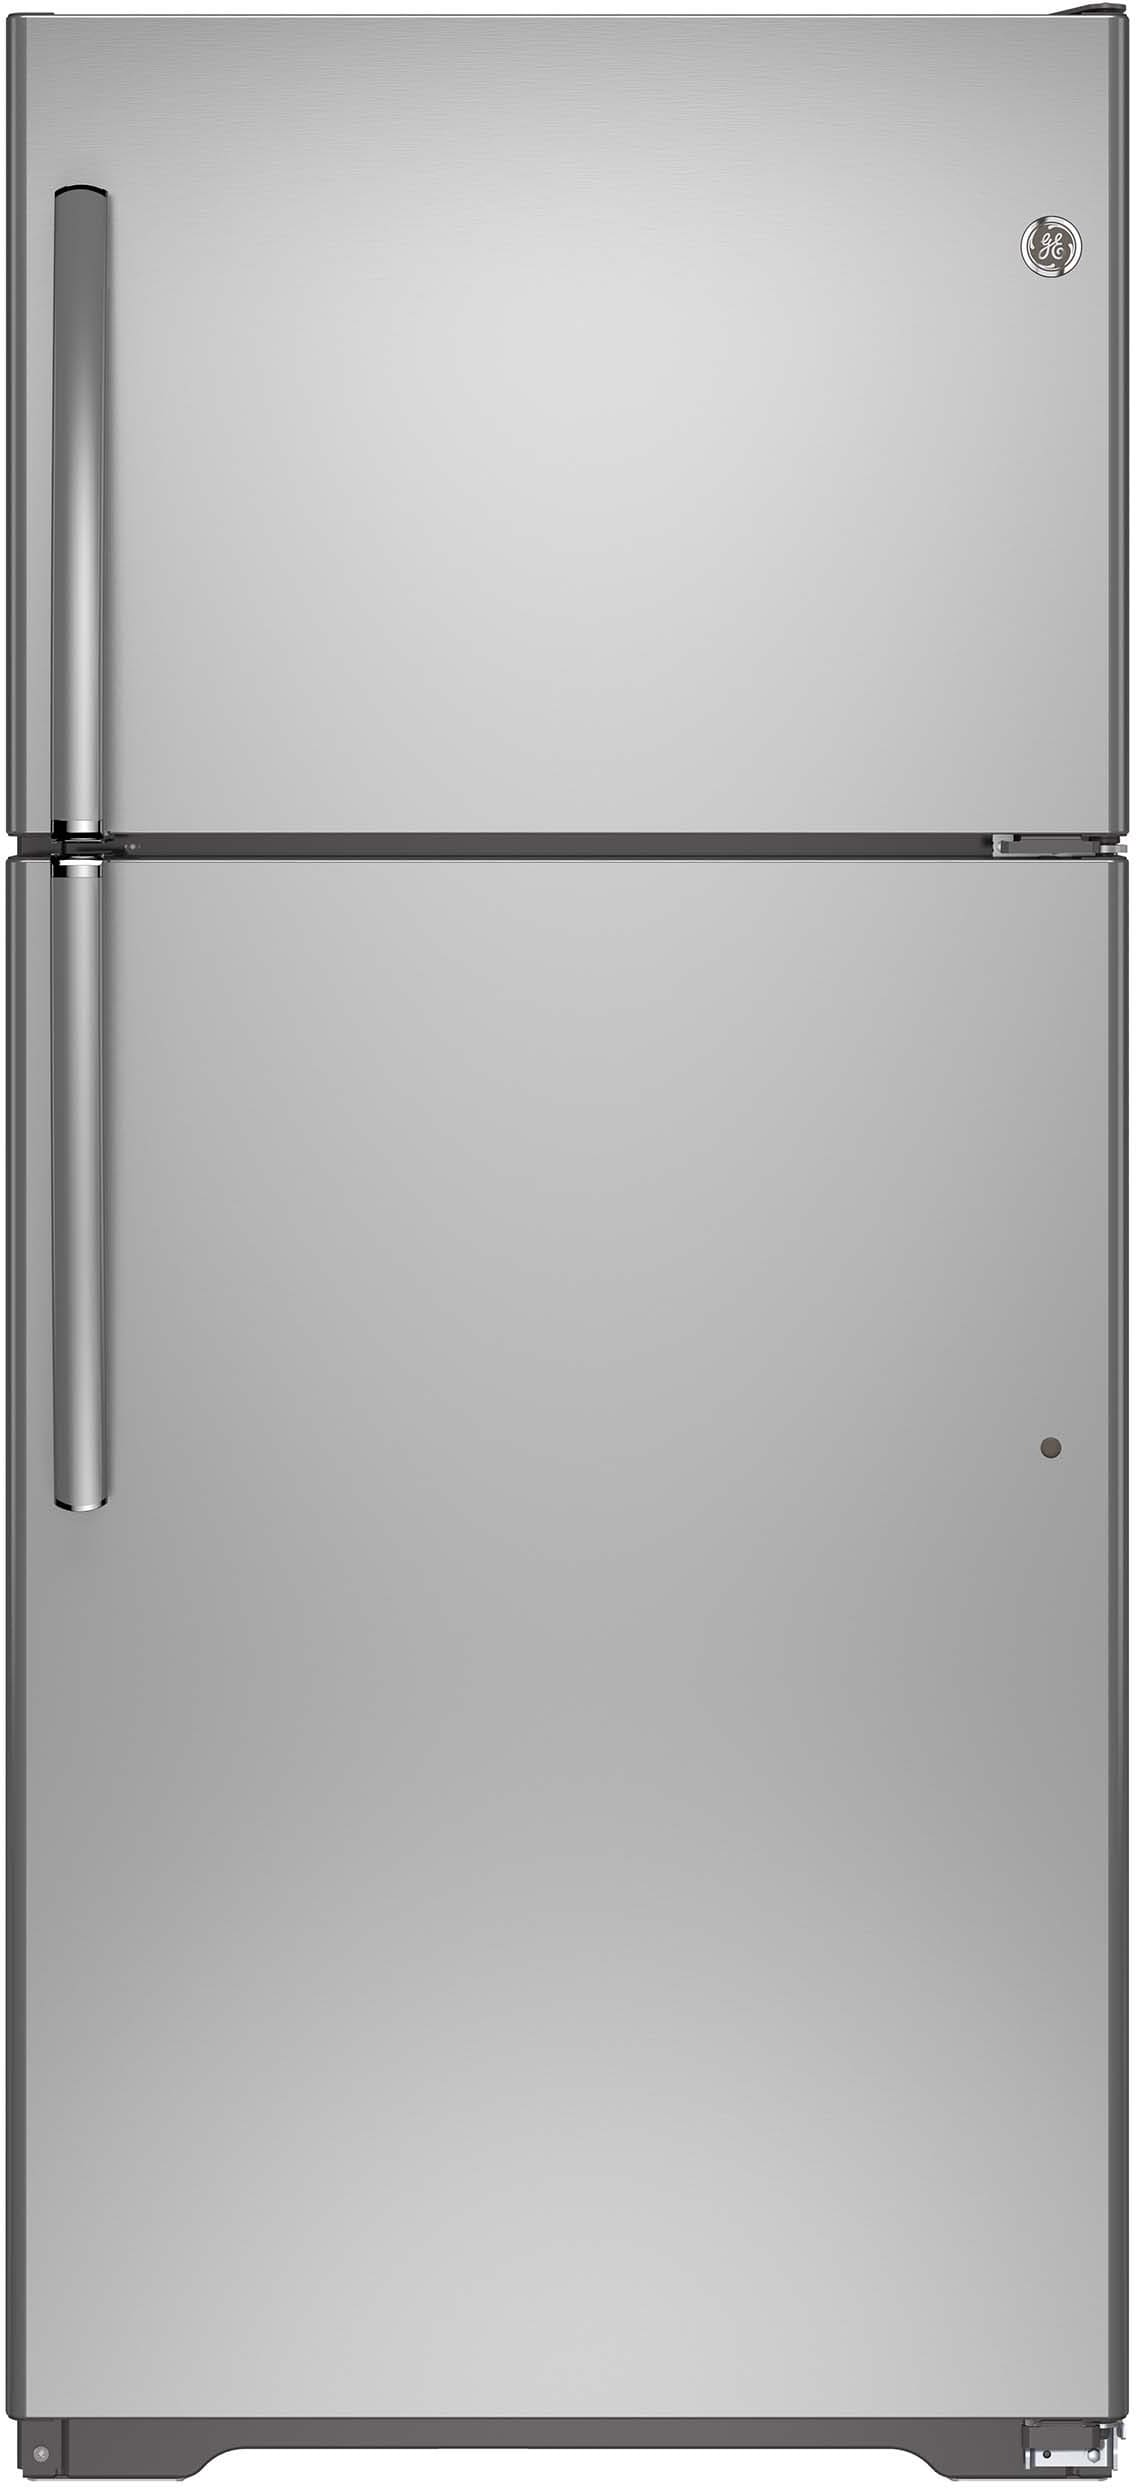 Ge Gie18ishss 30 Inch Top Freezer Refrigerator With 18 2